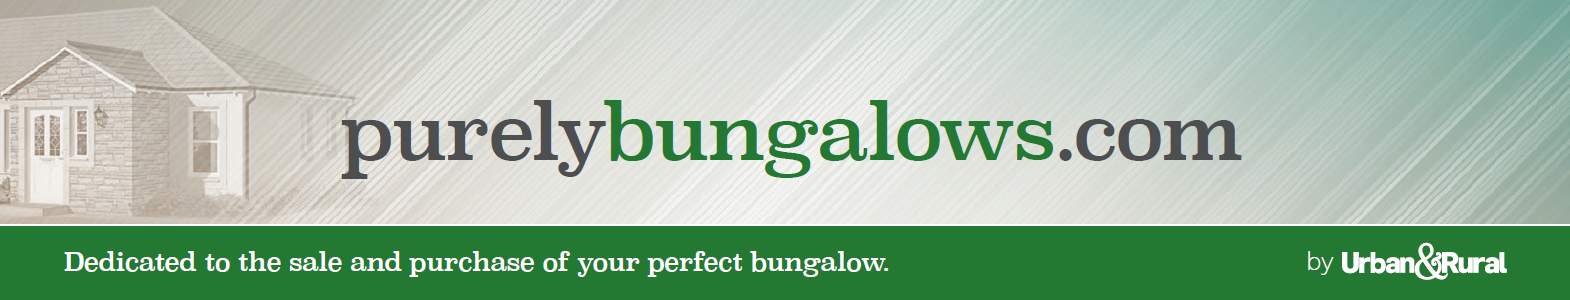 new_bungalows_banner